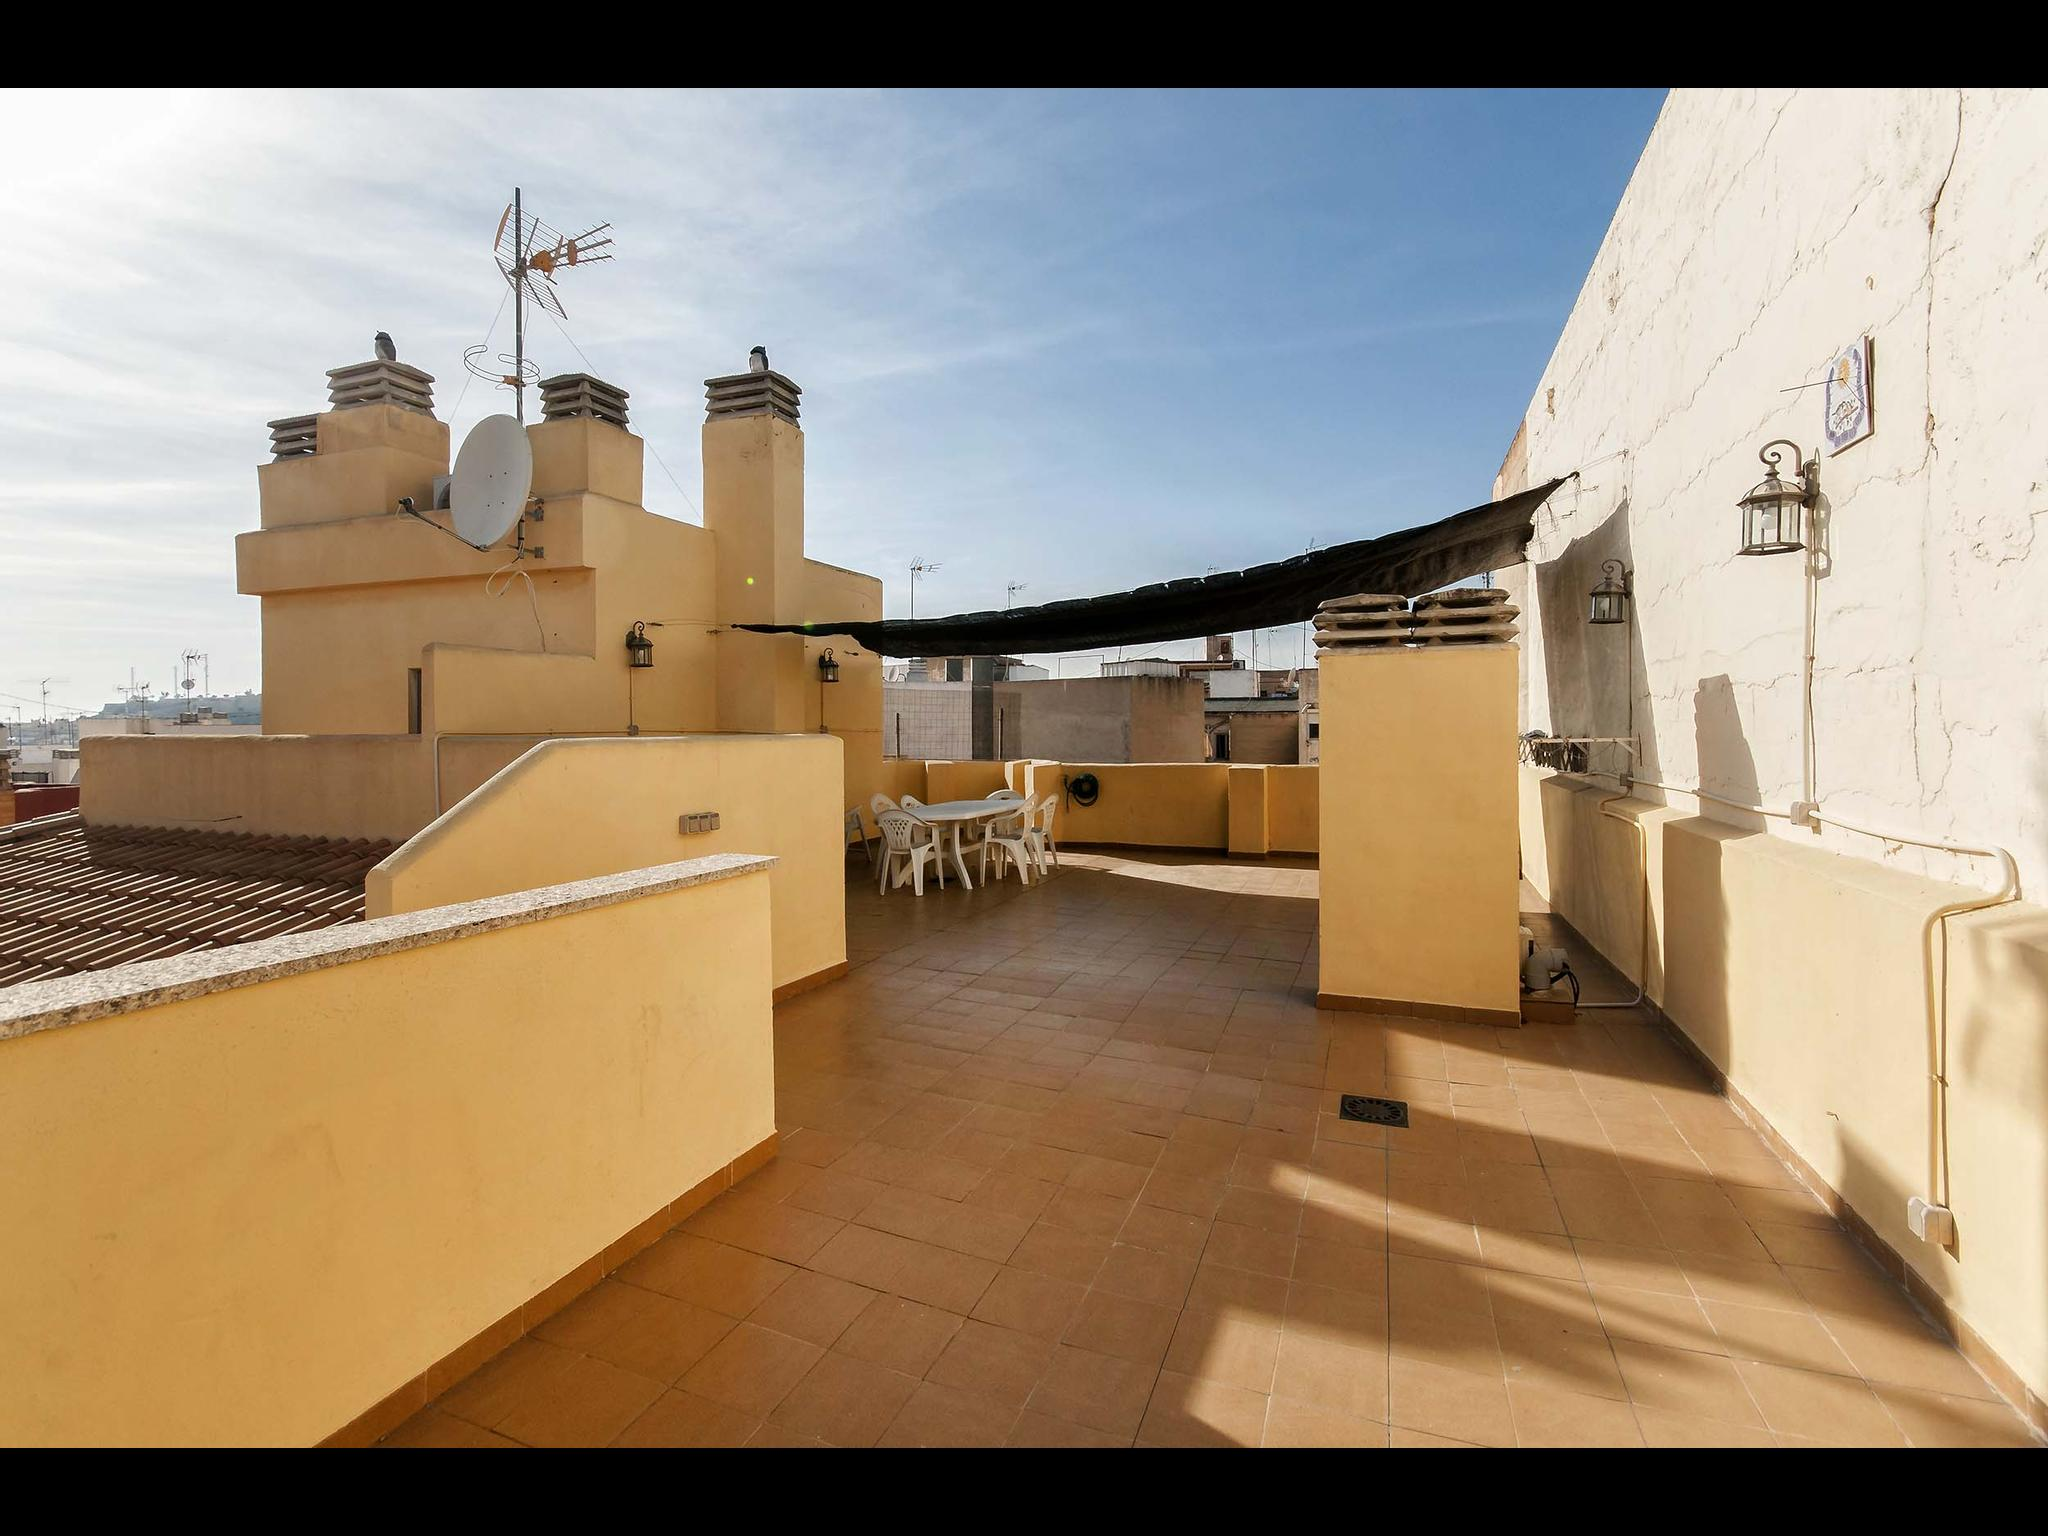 Bergez - Bedroom in a shared penthouse in Alicante